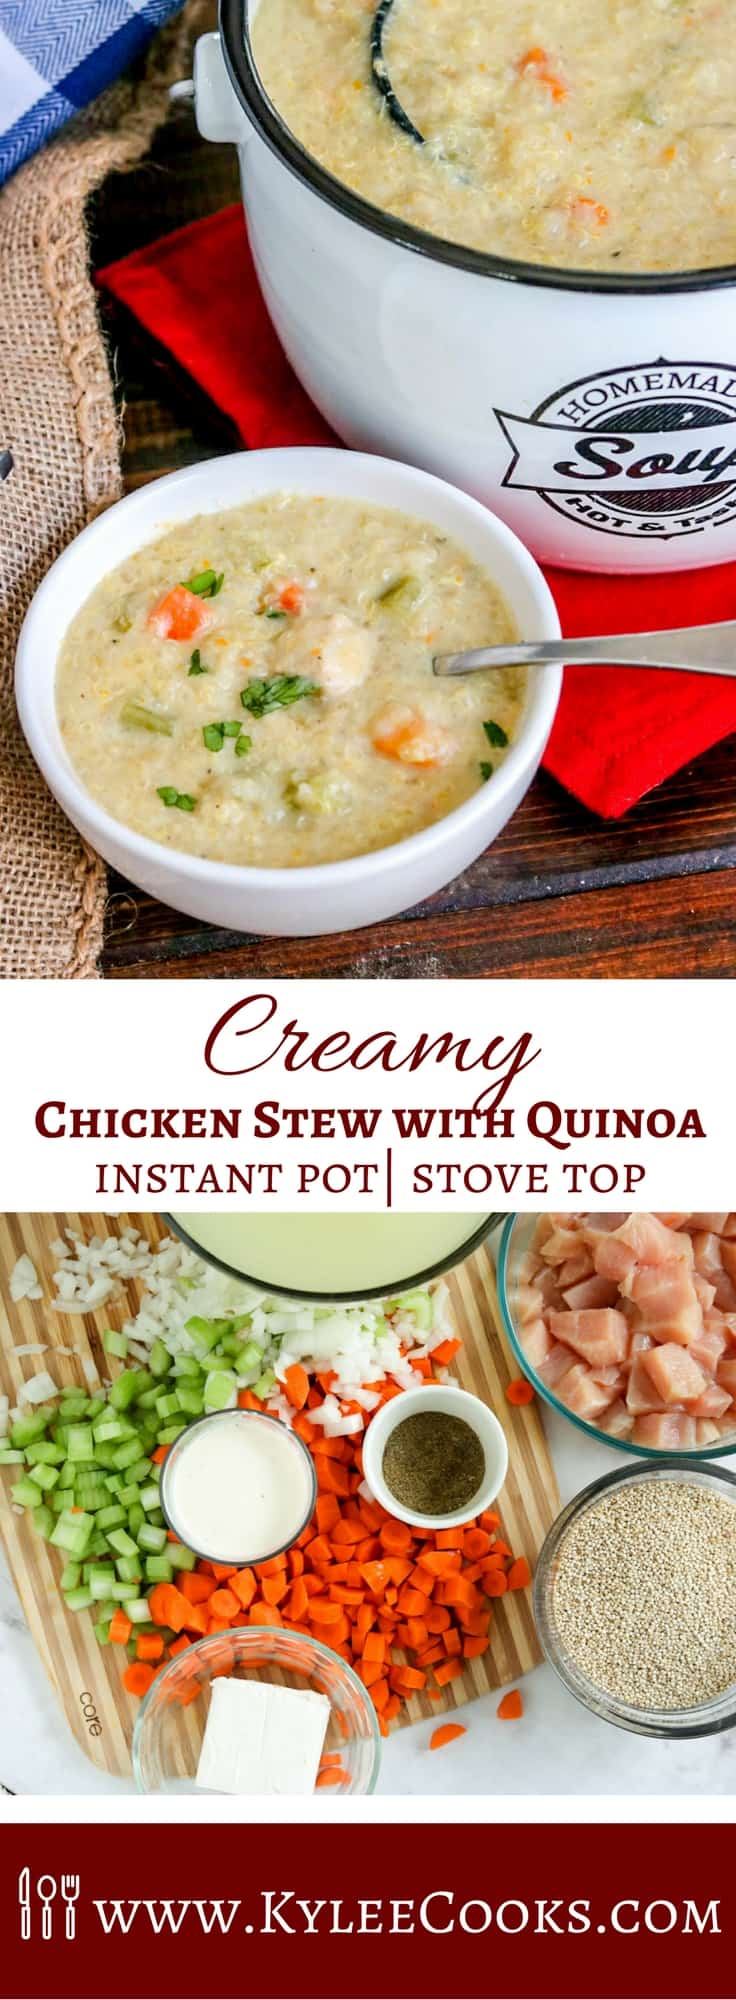 A hearty & warming stew, pure comfort food! A delightful meal, this delicious Chicken Stew with Quinoa will make you want to eat a second (and third) bowl!